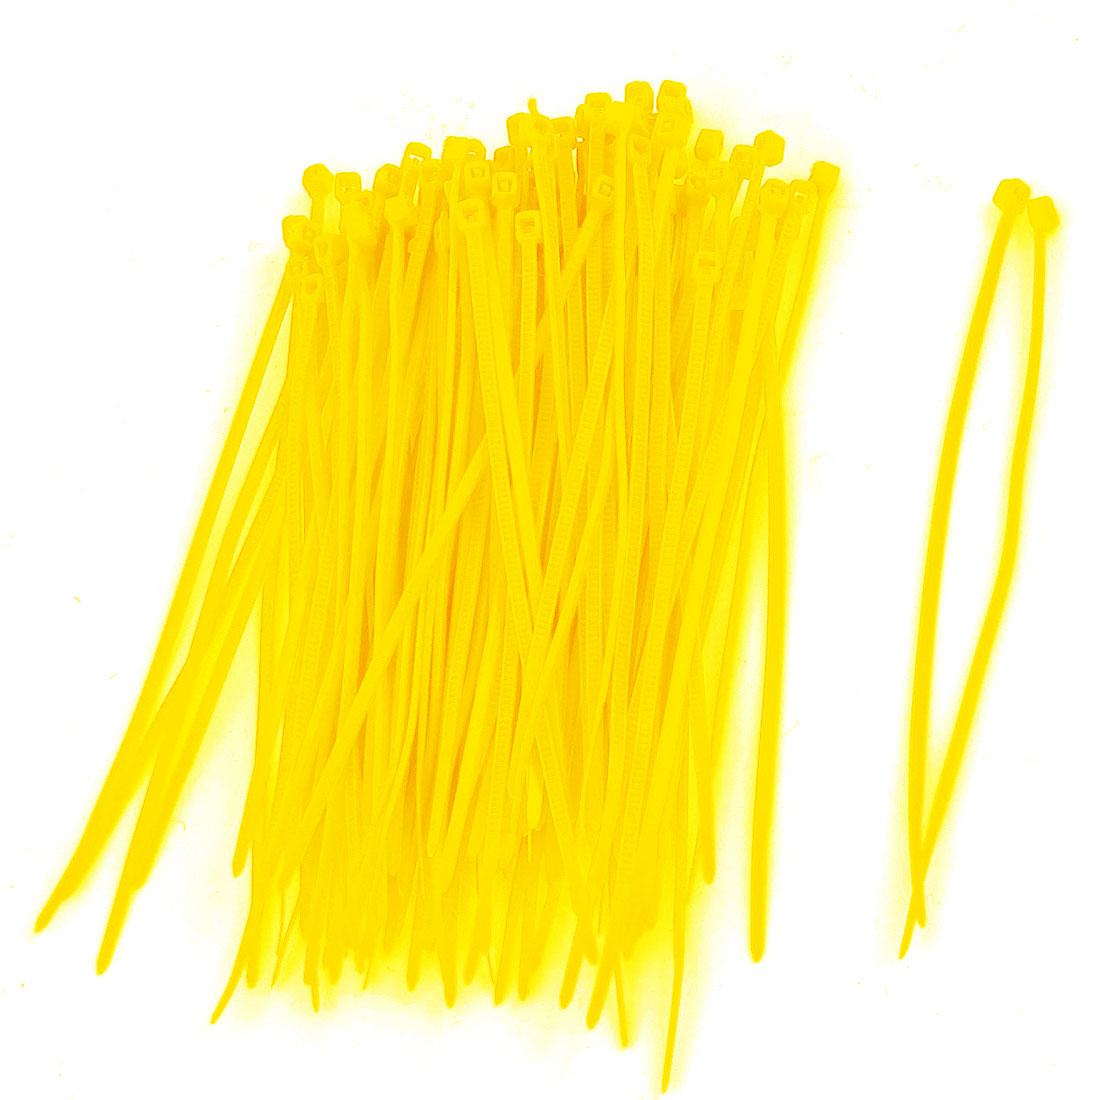 100 Pcs Flexible Plastic Cable Zip Tie Fasten Wrap Yellow 3 x 100mm